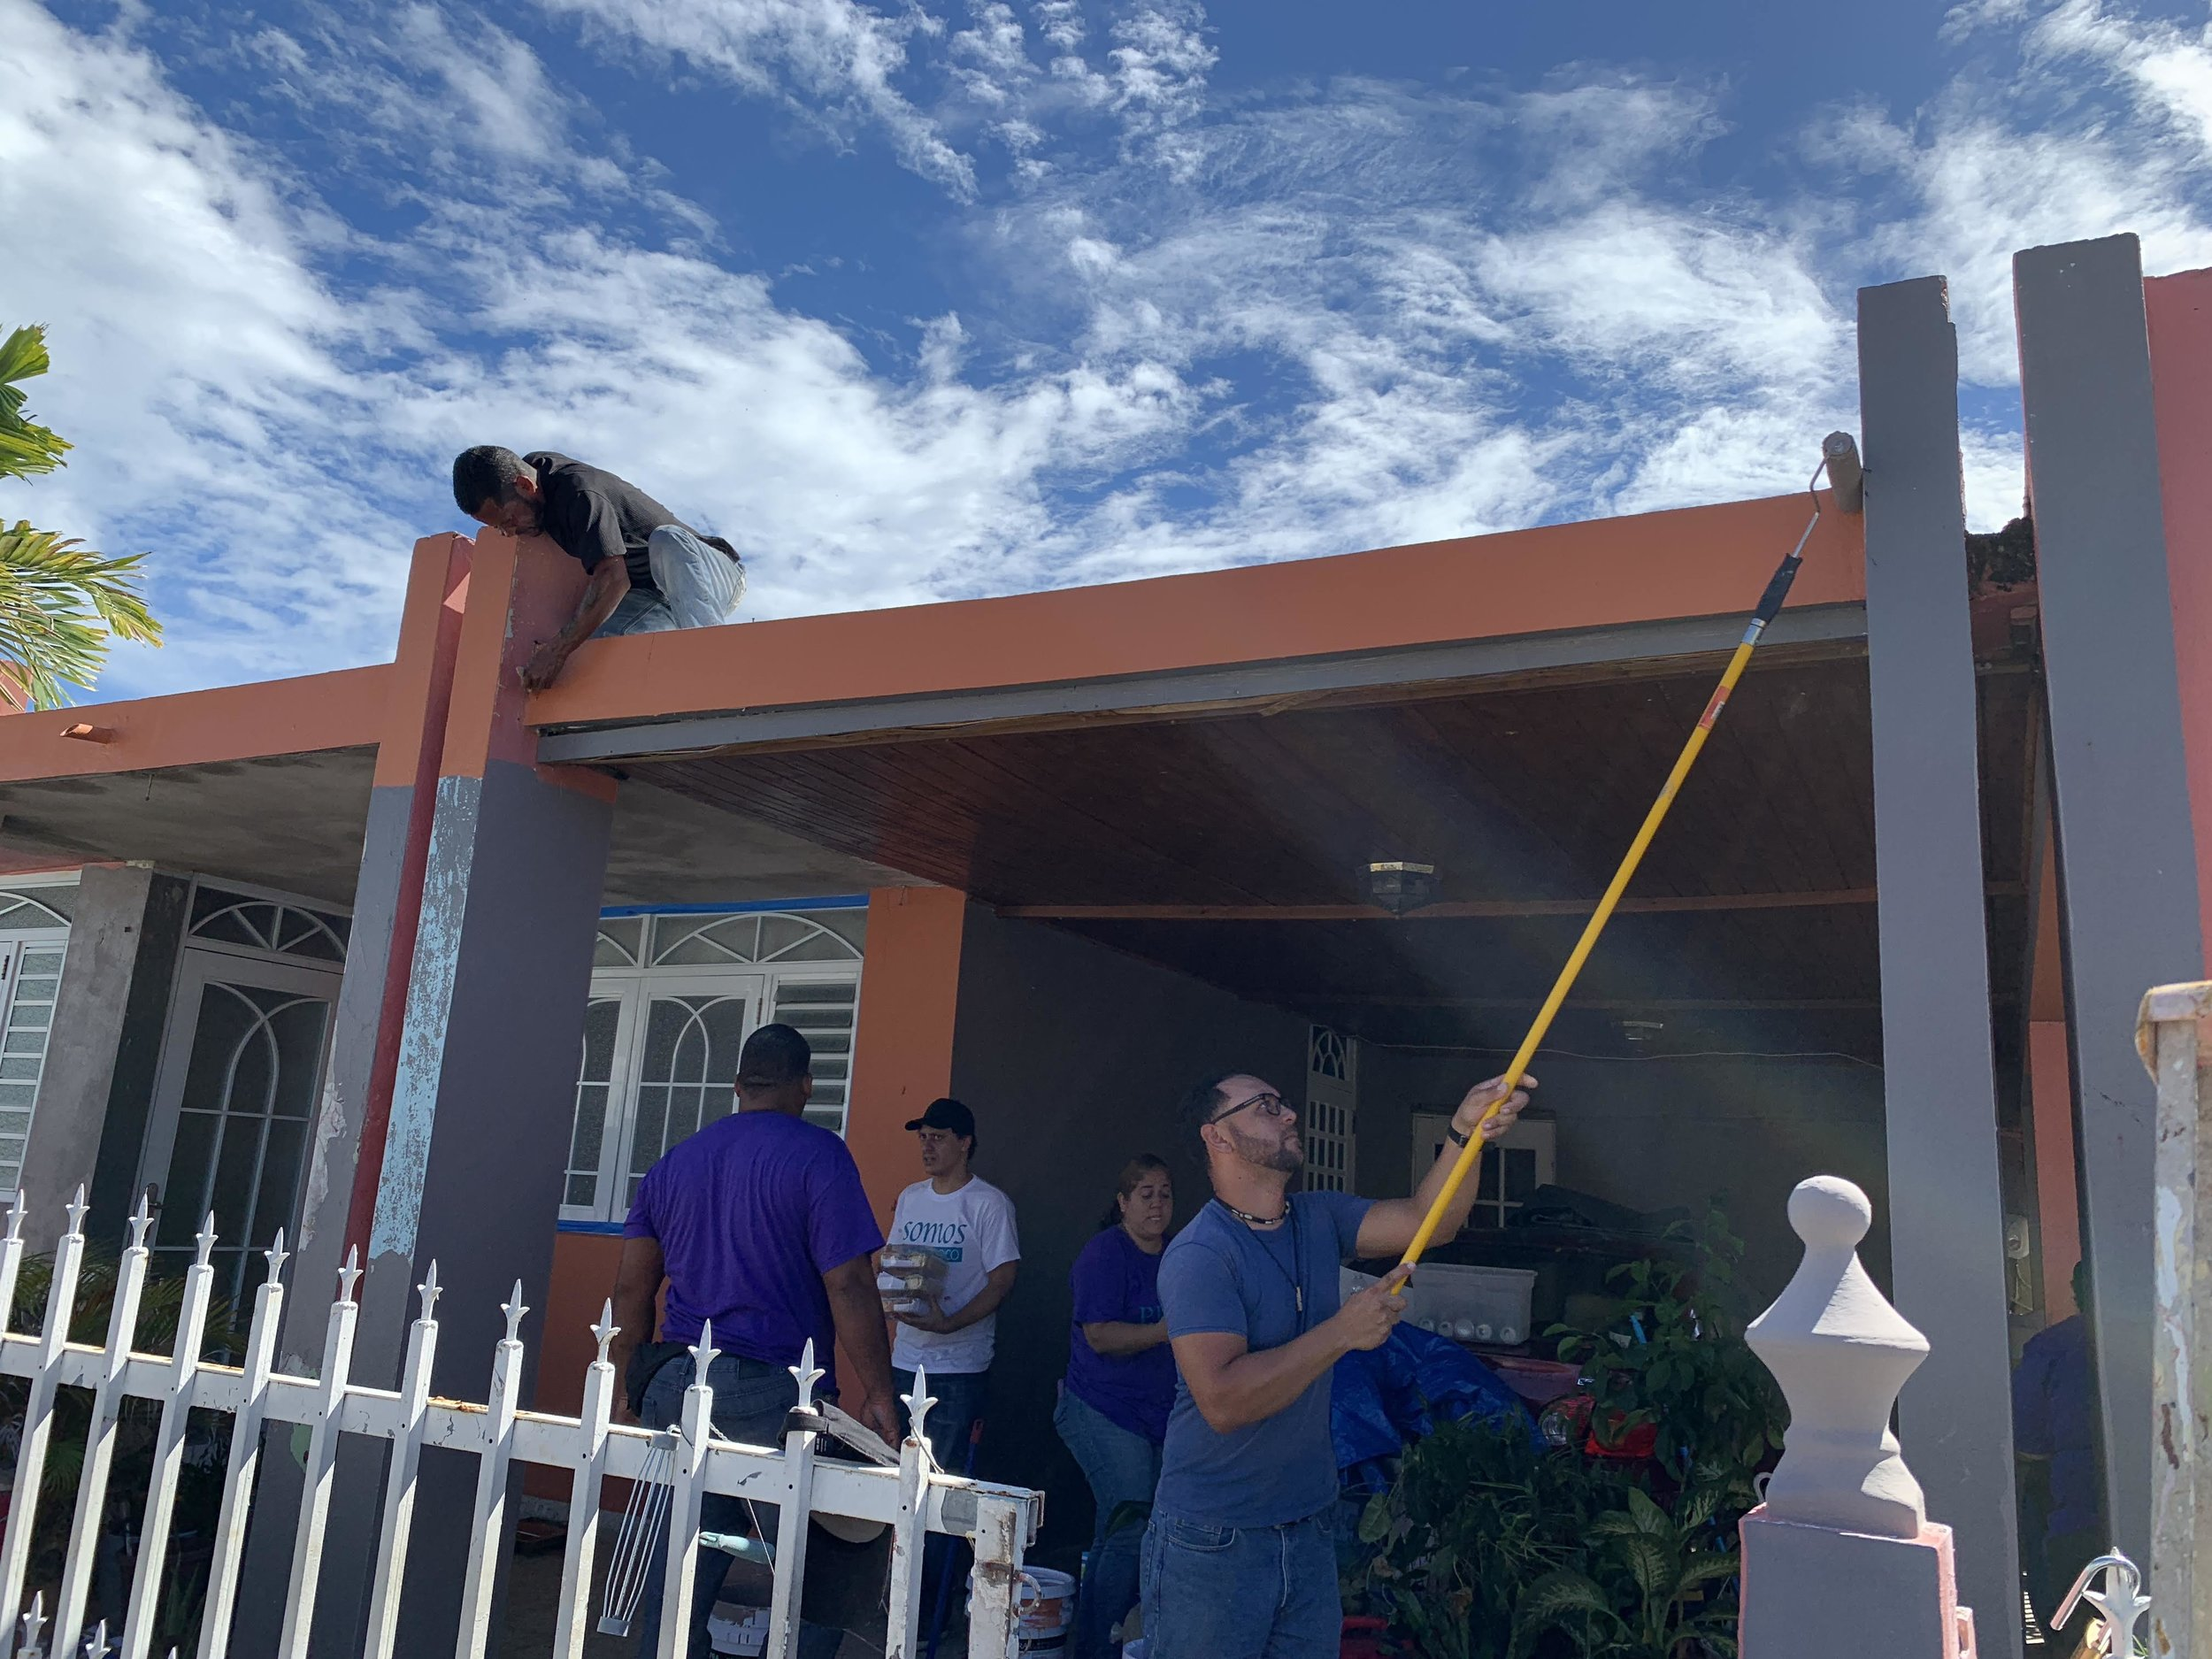 Reconstructing Homes Through Community and Collective Advocacy - The Viviendas Initiative includes a plan involving three recovery strategies: physical repairs of homes, collective advocacy, and community legal assistance.In partnership with